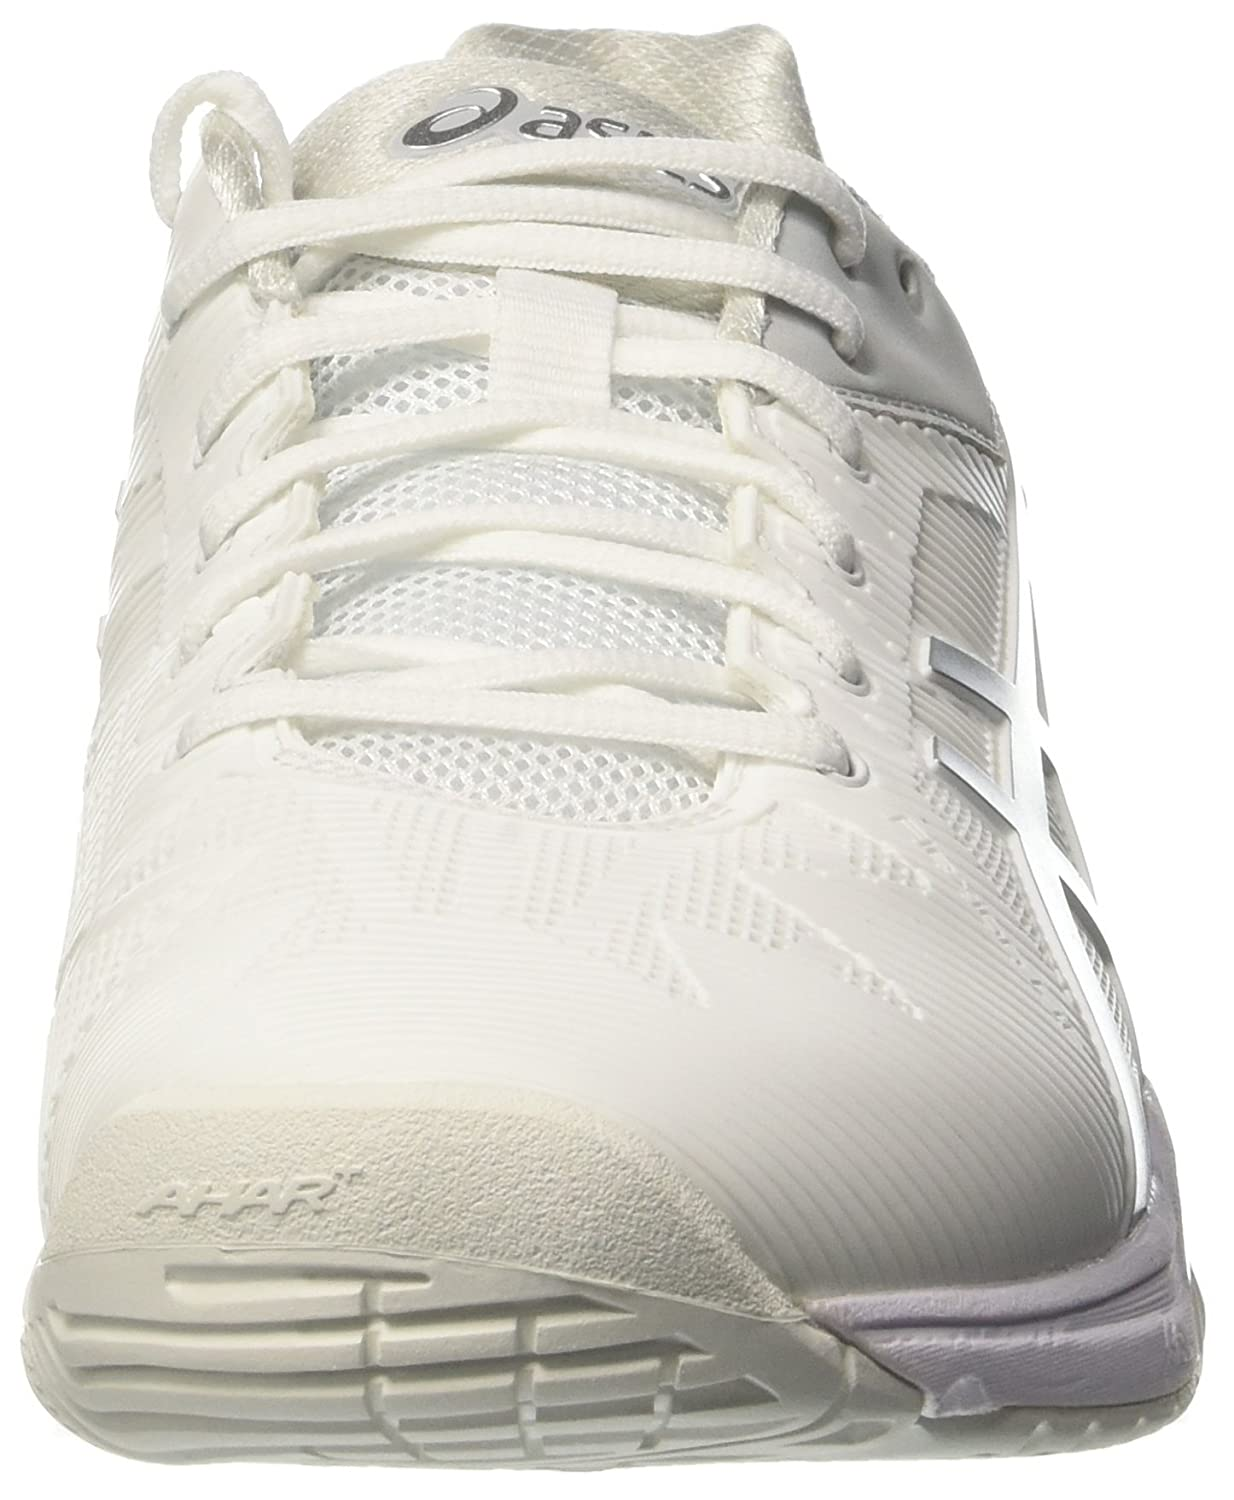 ASICS Damen Gel-Solution Tennisschuhe Speed 3 Tennisschuhe Gel-Solution 064760